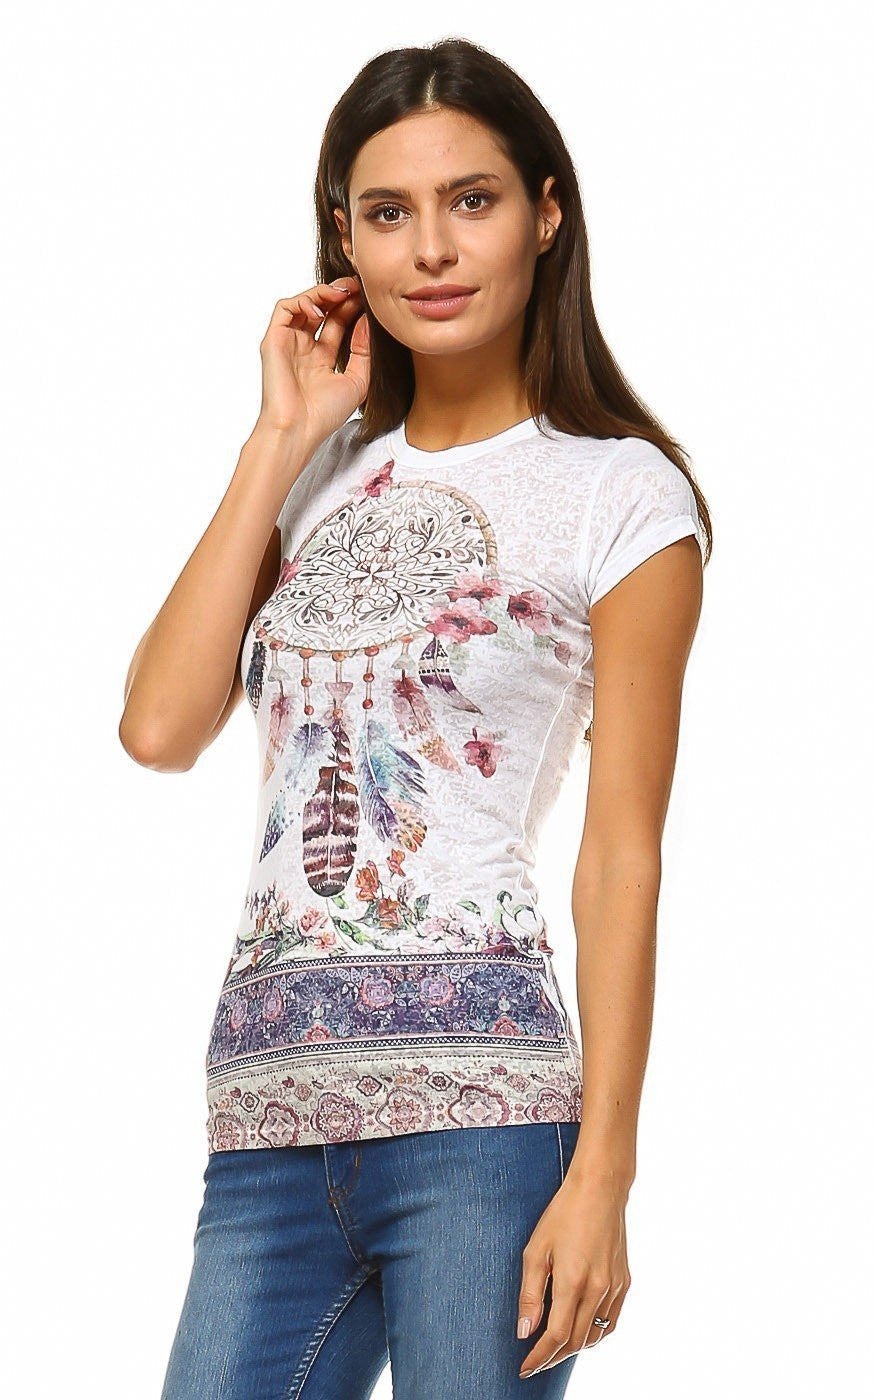 wholesale clothing, urban x, urban x clothing, urban x apparel, wholesale womens clothing,